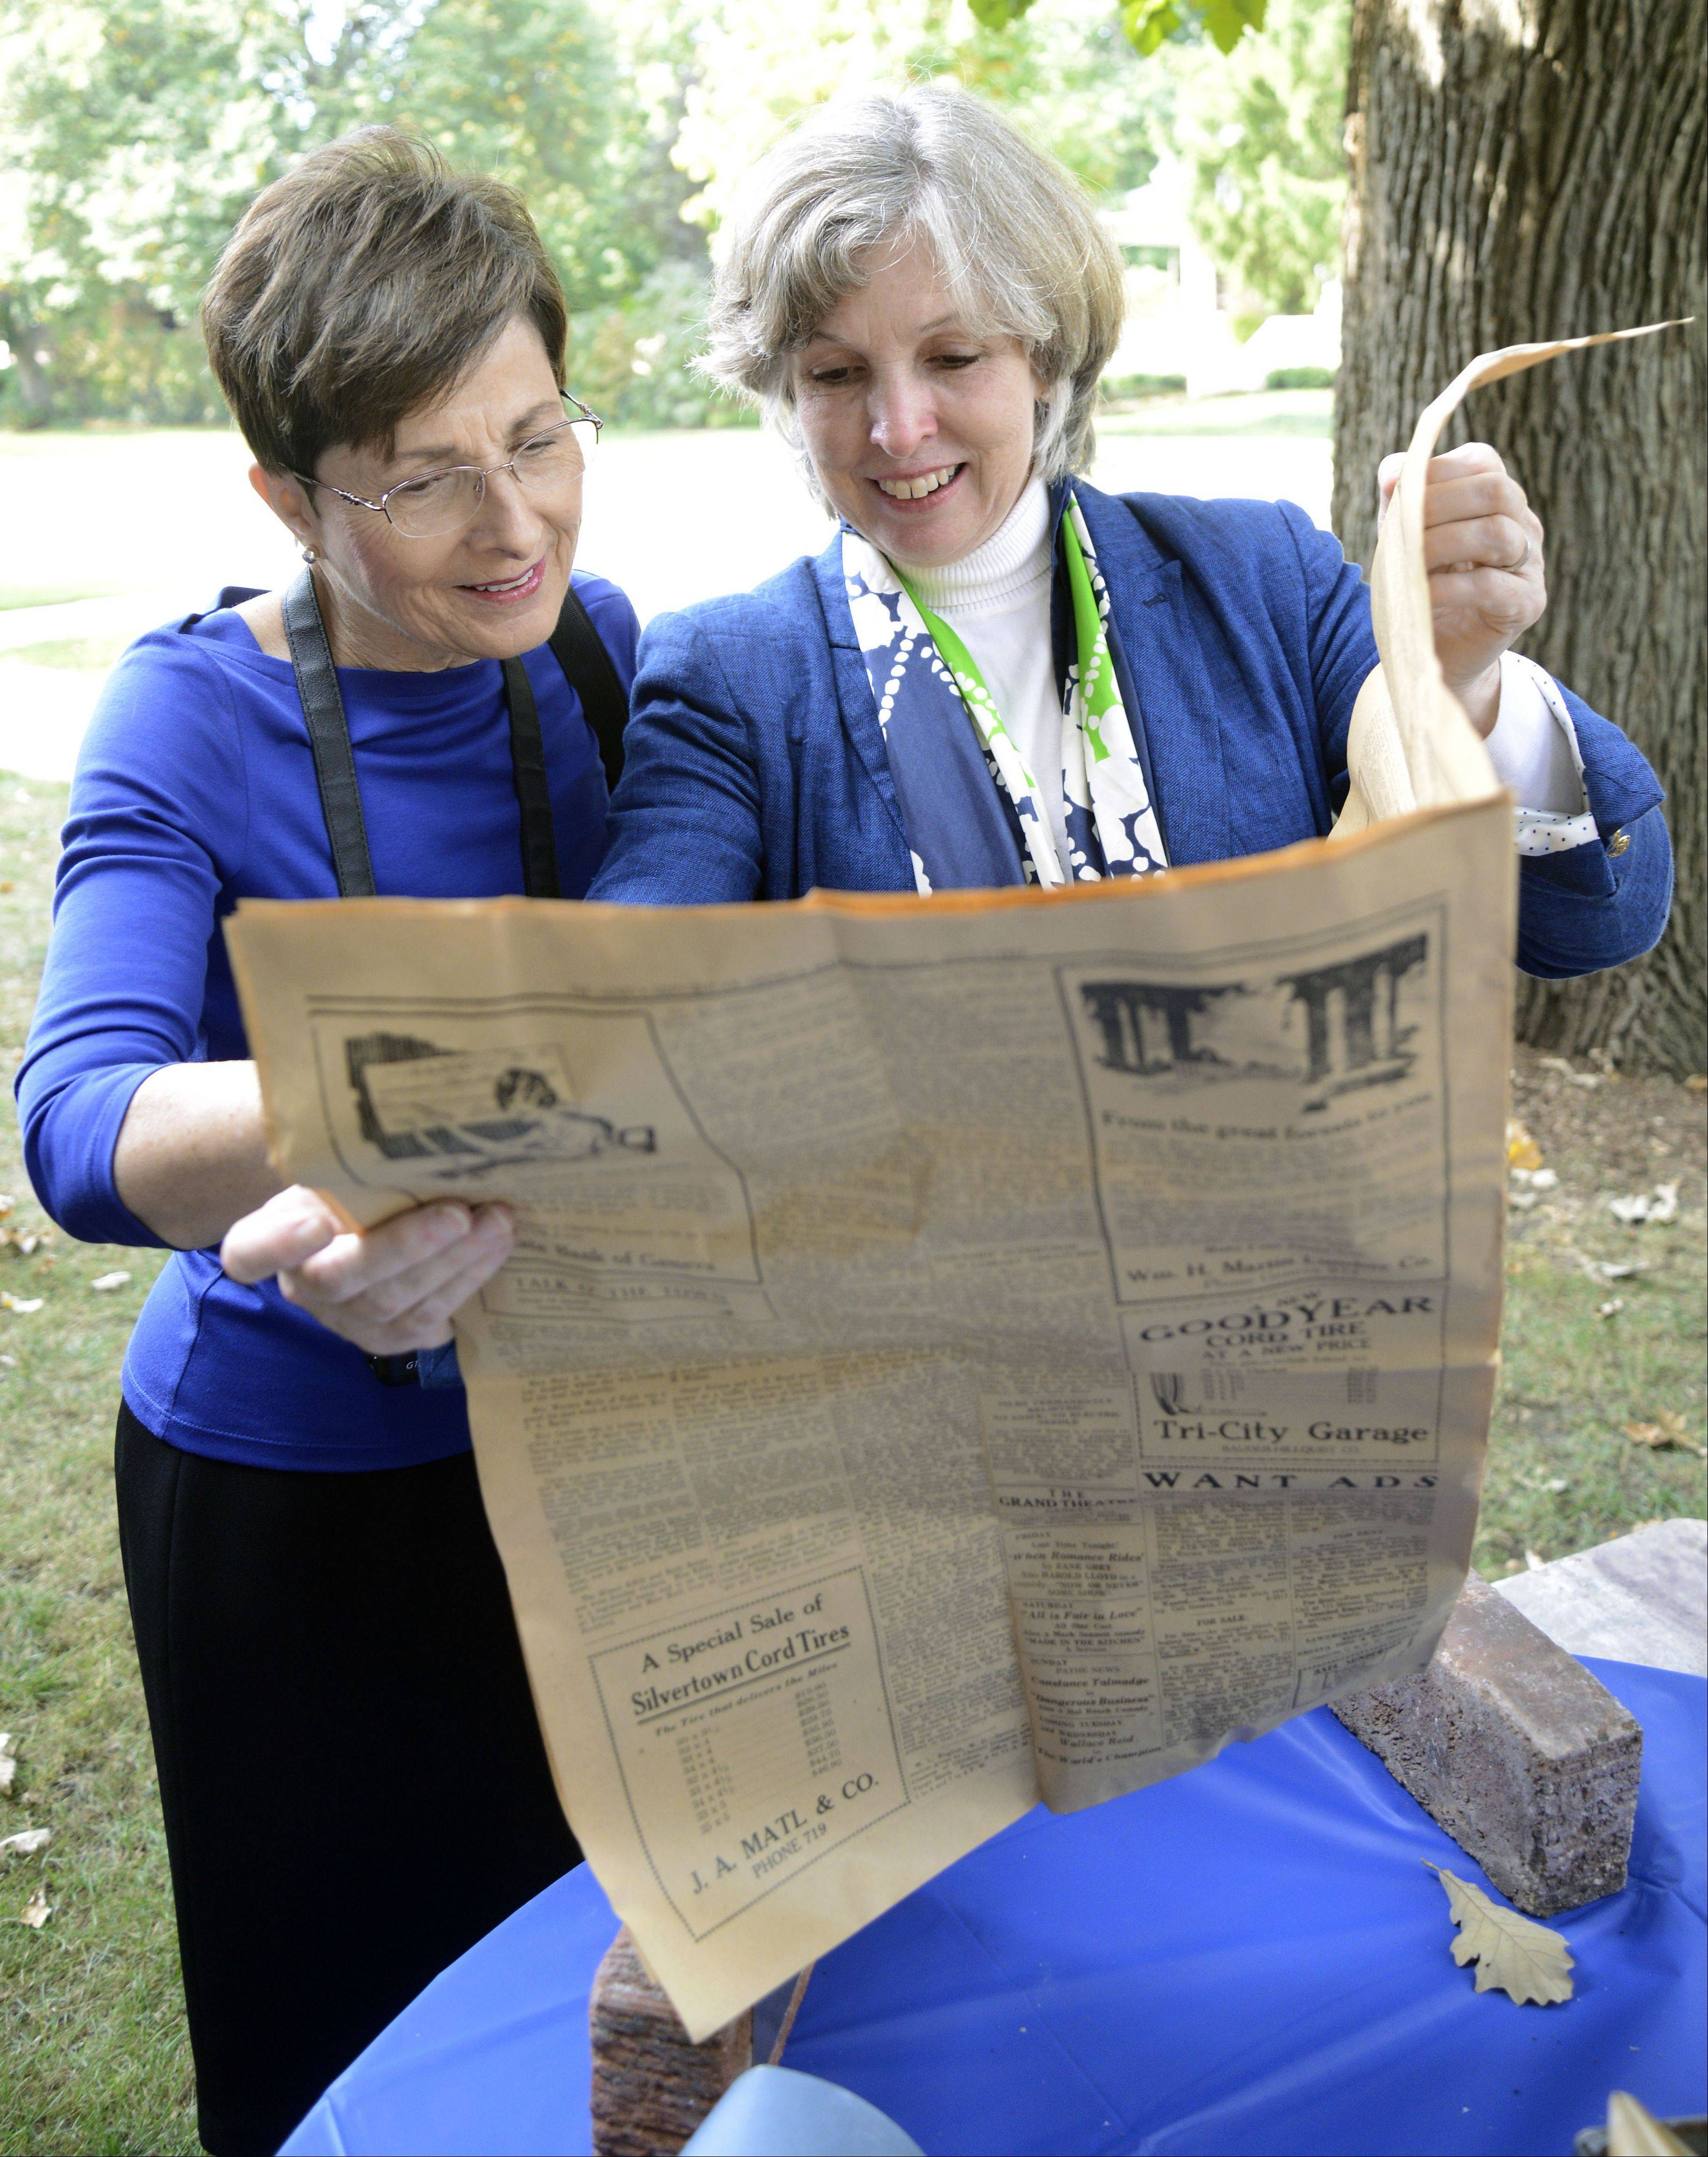 Ellen Frech of Palatine, left, and Martha Coultrap, read a commentary piece about flappers in the newspaper dated Aug. 11, 1922, after it was removed from a time capsule inside a marker stone of the recently razed Coultrap Elementary School in Geneva.